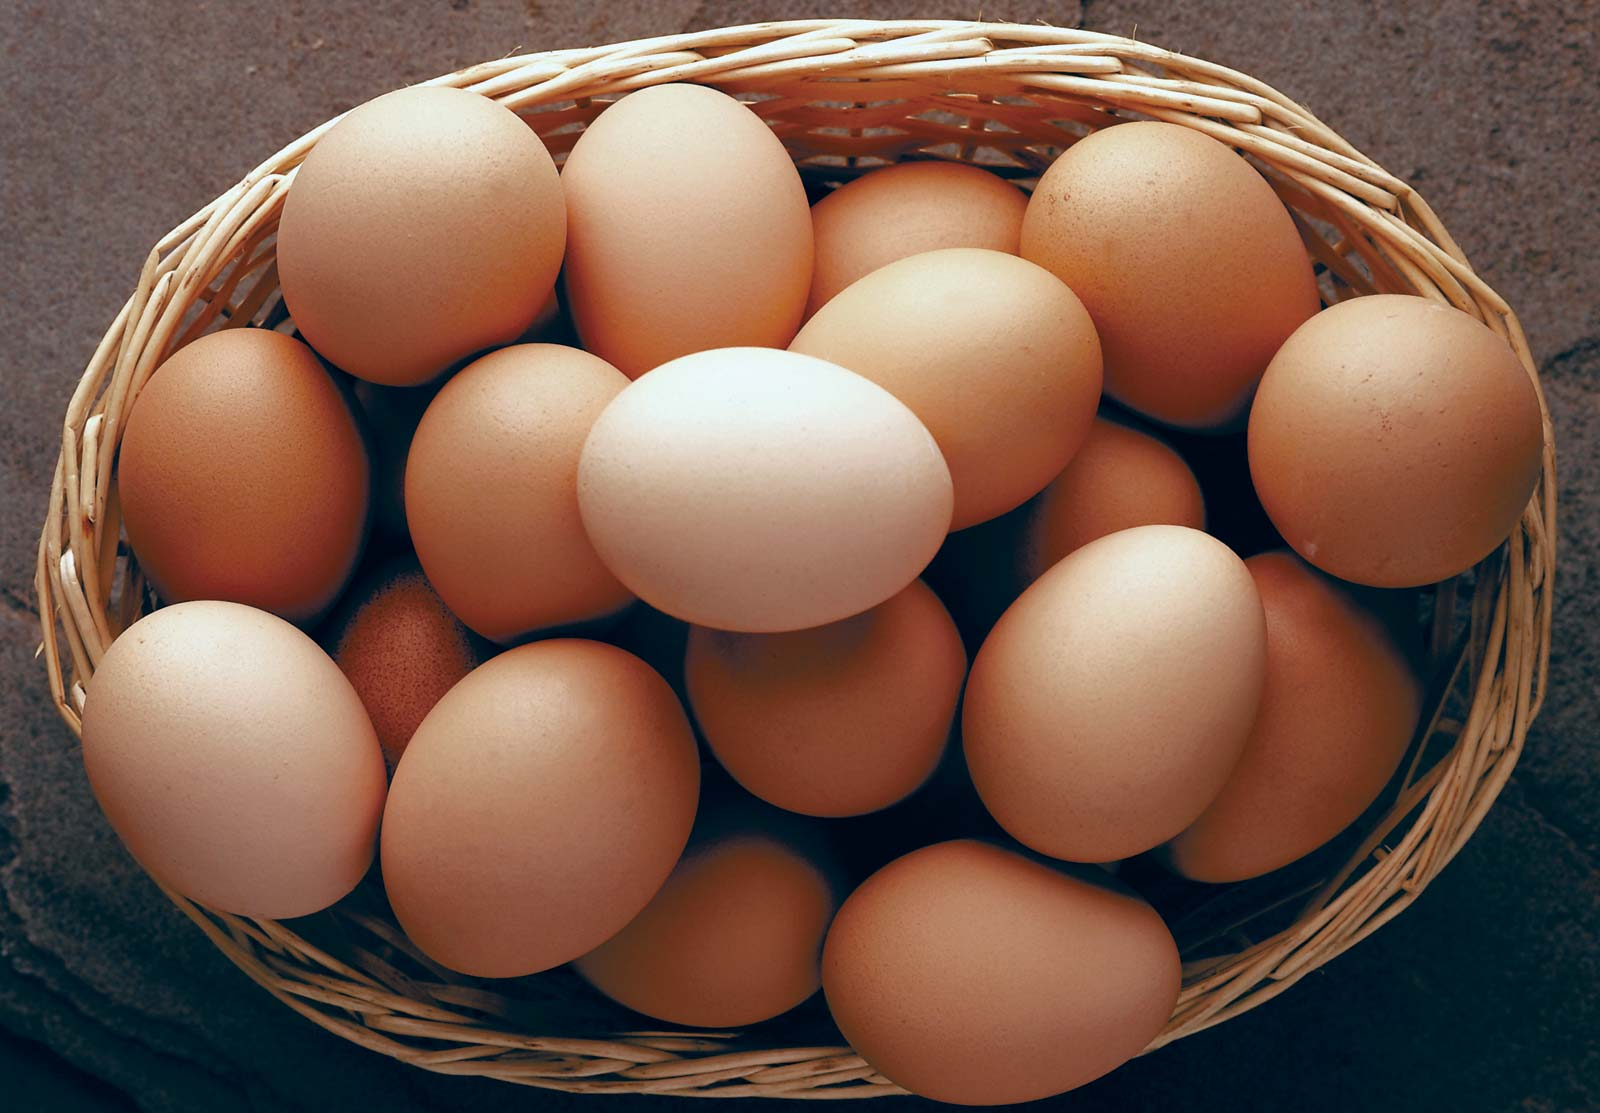 Egg consumption reduces risk of COVID-19 transmission: experts